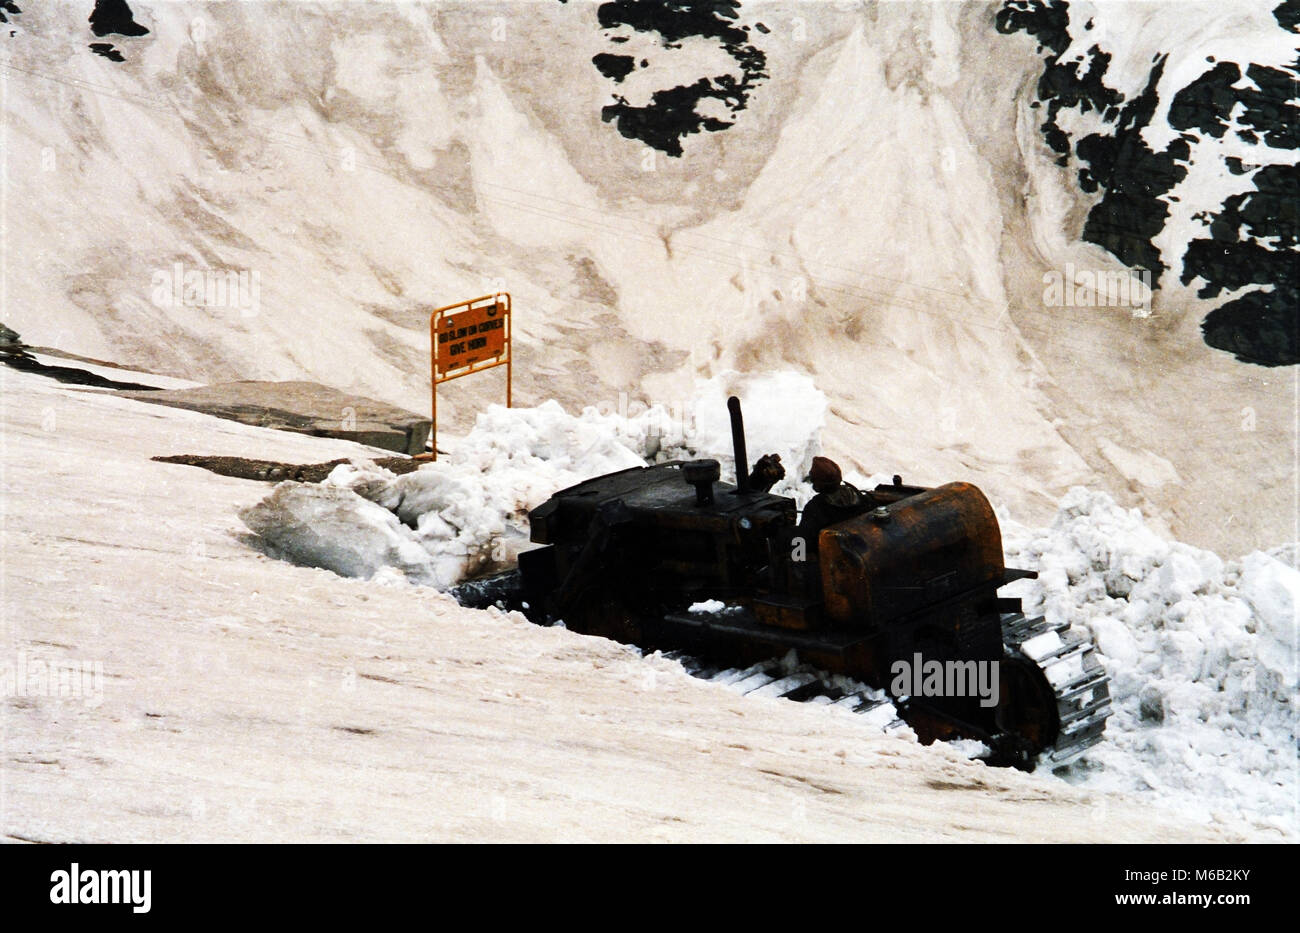 Clearing the Rohtang Pass on the Himalayan road connecting The Kulu valley and Lahaul and Spiti in  Himachal Pradesh. - Stock Image